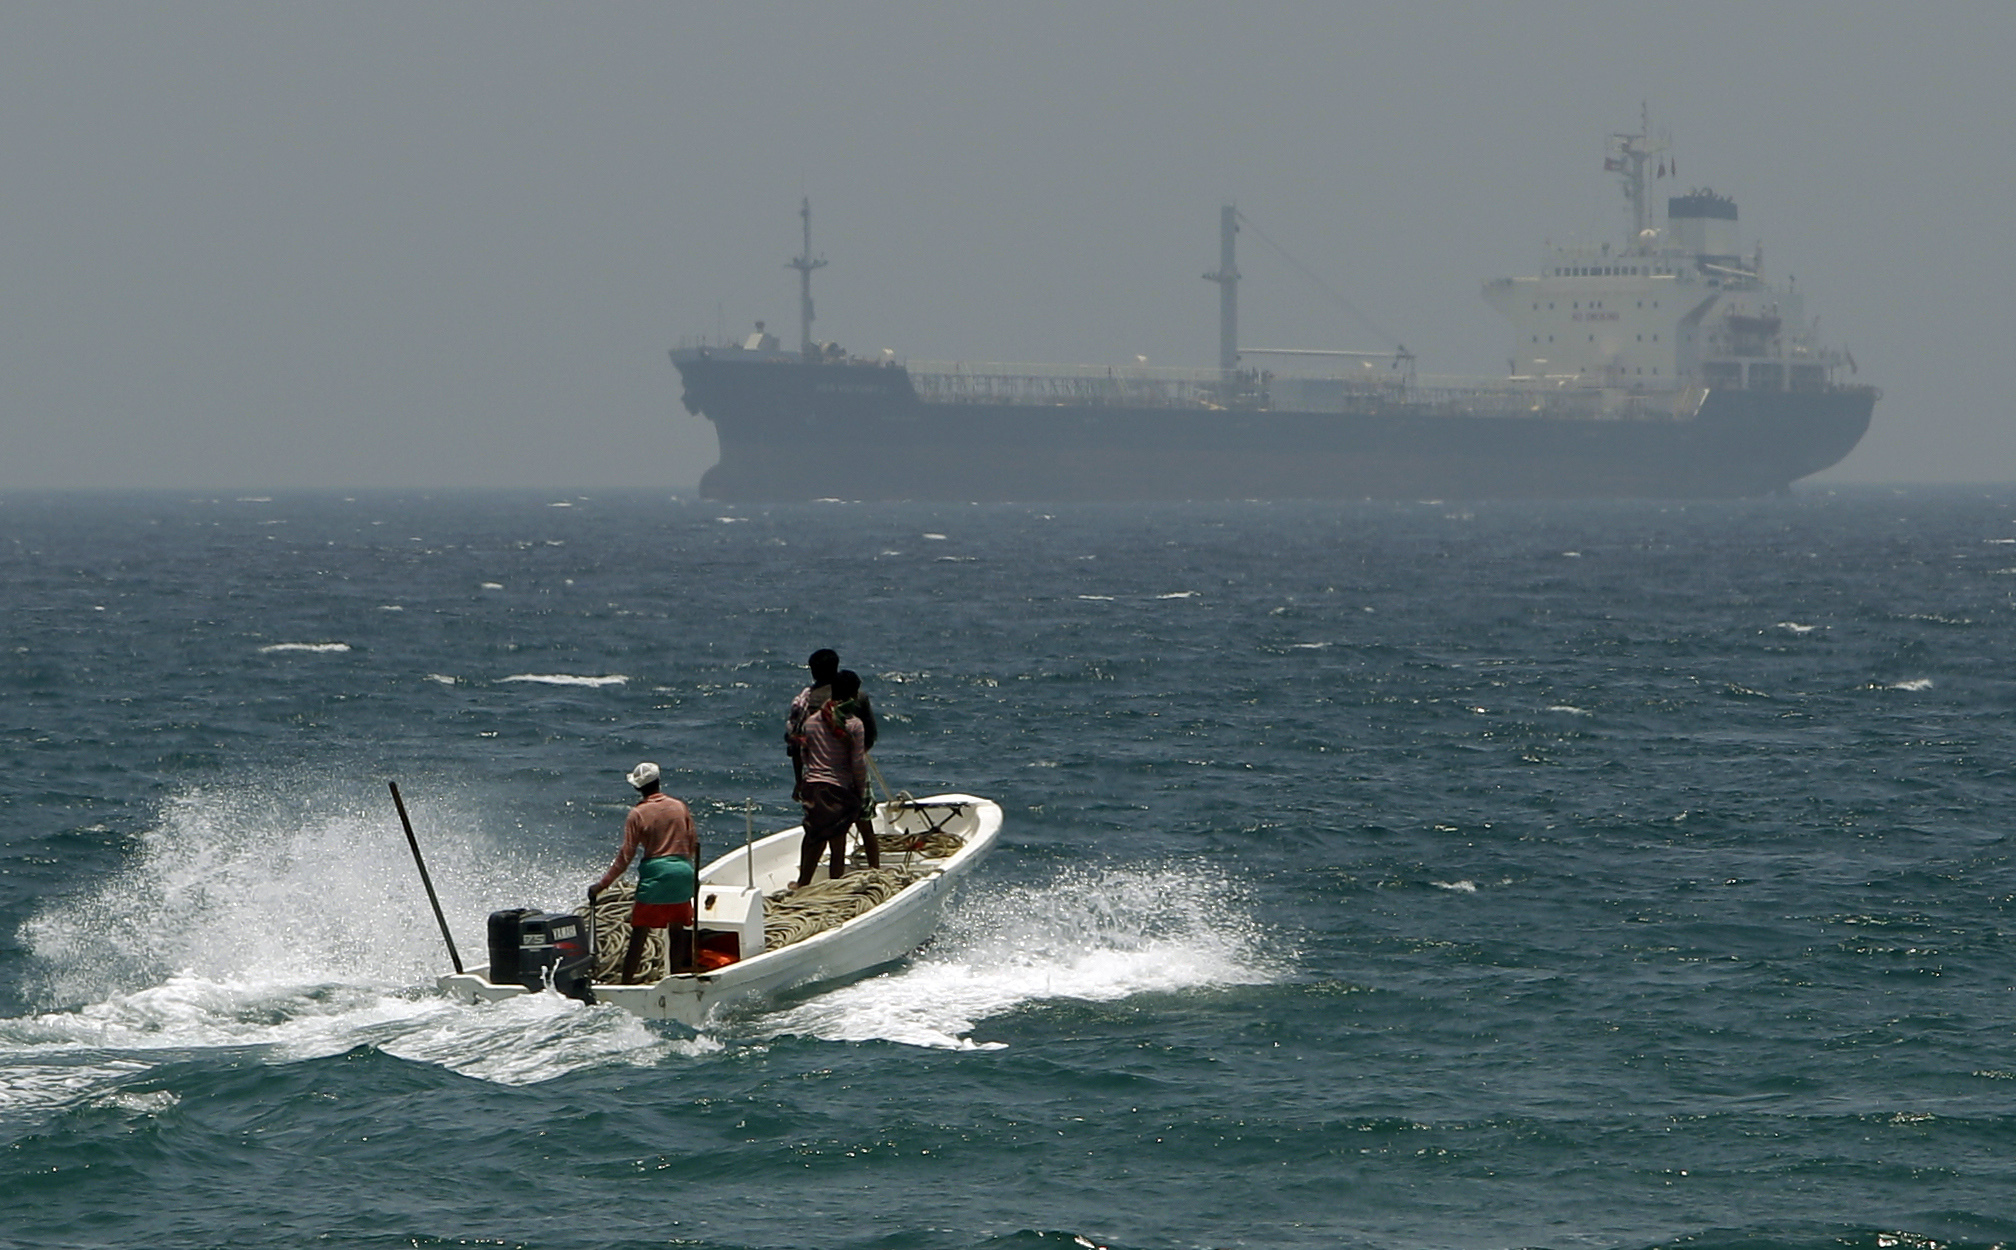 FILE - In this May 30, 2012, file photo, fishermen cross the sea waters off Fujairah, United Arab Emirates, near the Strait of Hormuz. The United Arab Emirates said Sunday, May 12, 2019 that four commercial ships near Fujairah  were subjected to sabotage operations  after false reports circulated in Lebanese and Iranian media outlets saying there had been explosions at the Fujairah port. (AP Photo/Kamran Jebreili, File)